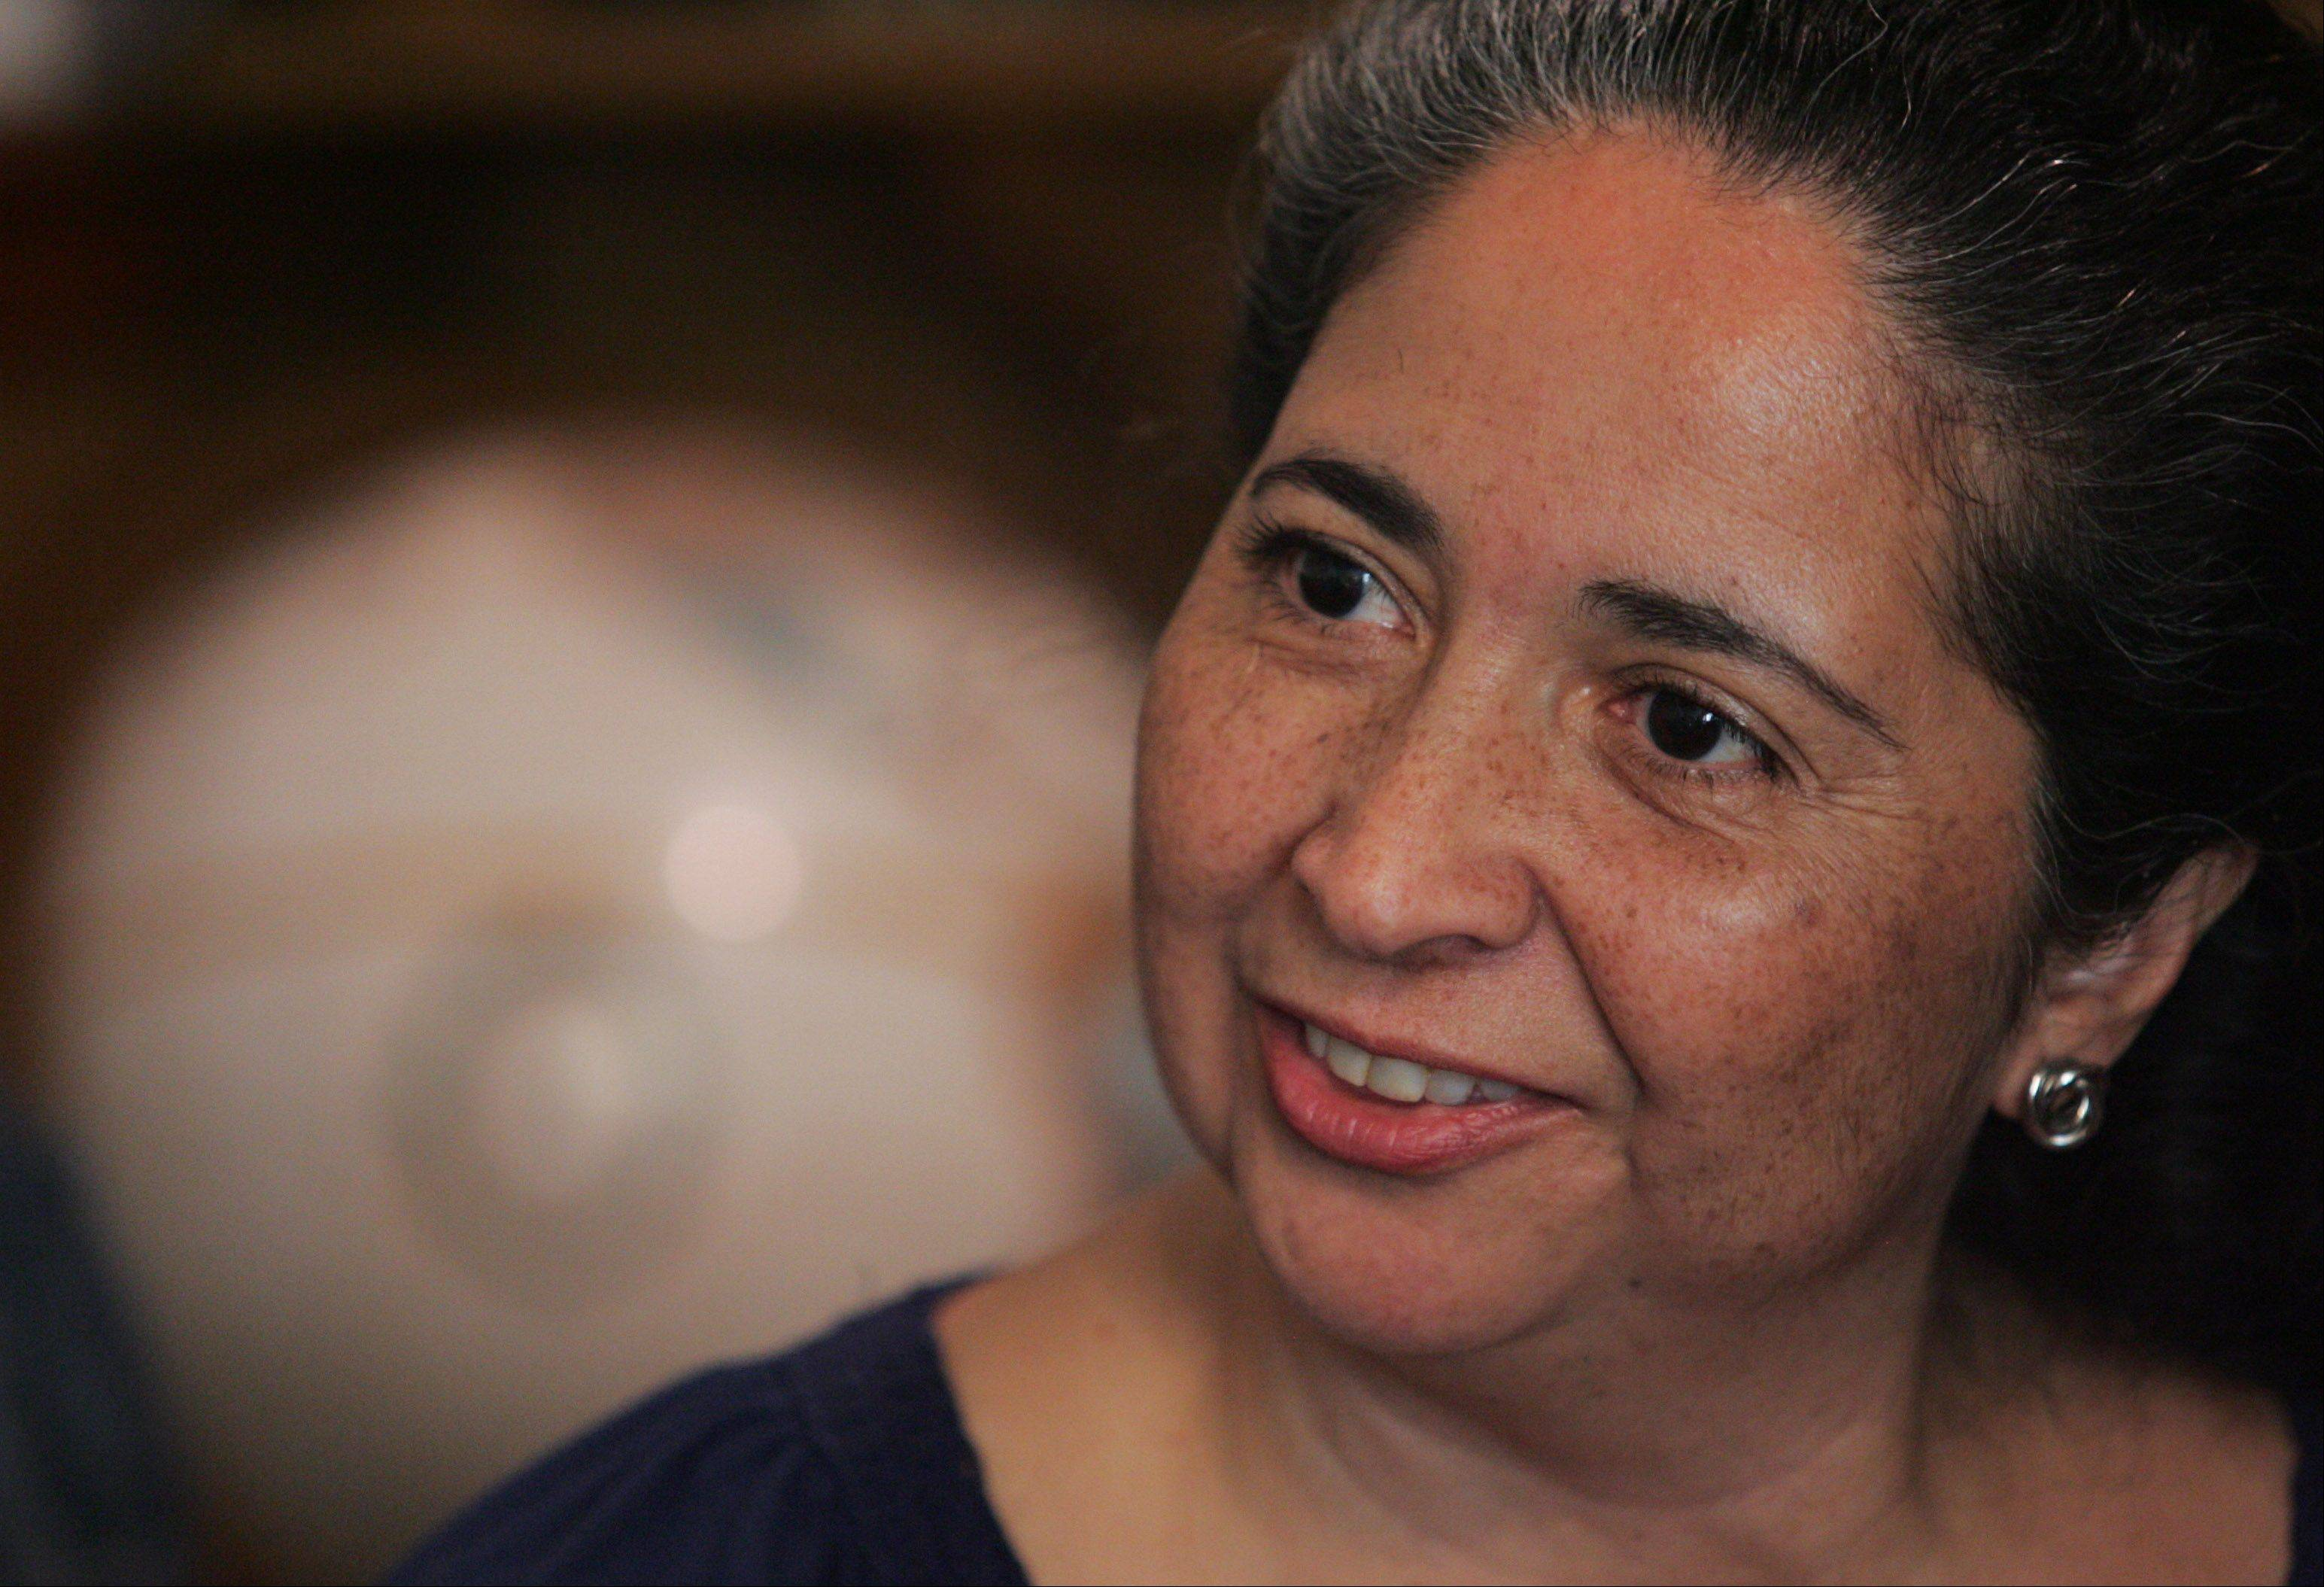 Helen López Strom of Elgin has been a strong voice for the Latino community for years, most recently as president of LULAC Council 5236. She was recently named the 2012 Illinois Woman of the Year by the state League of United Latin American Citizens group.